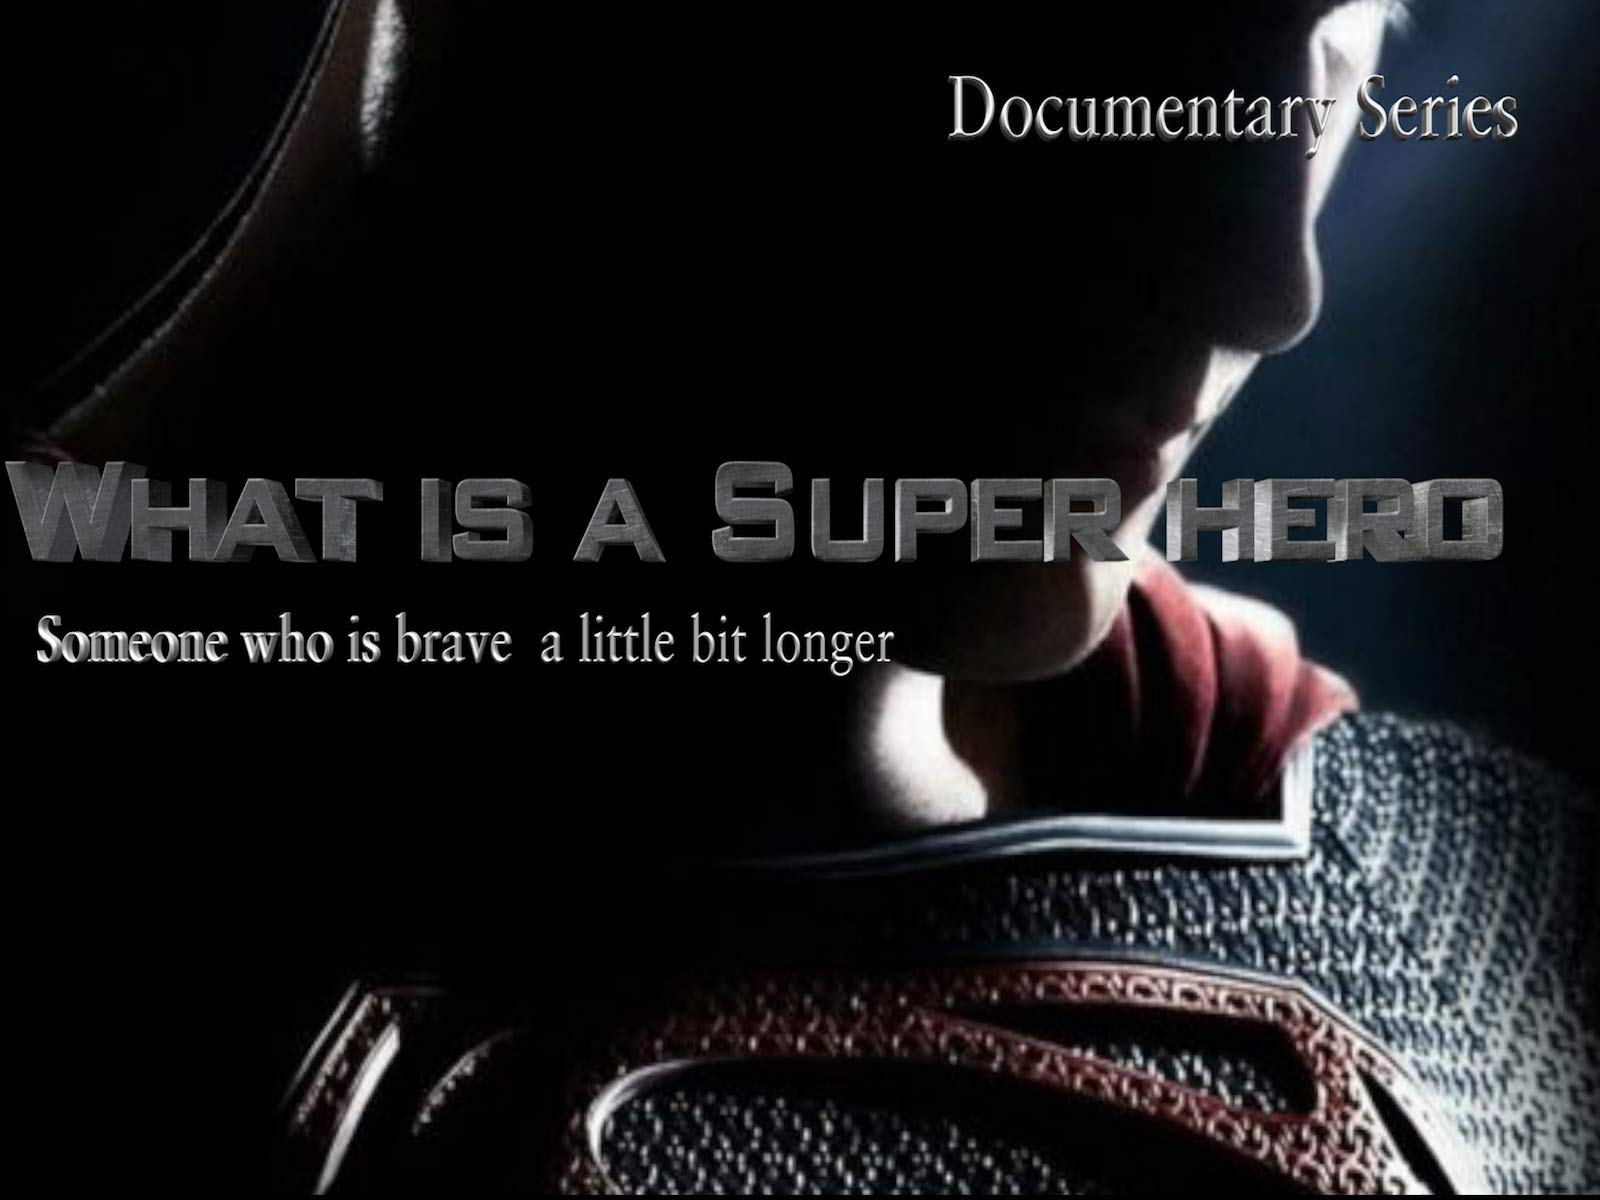 What is a Super hero